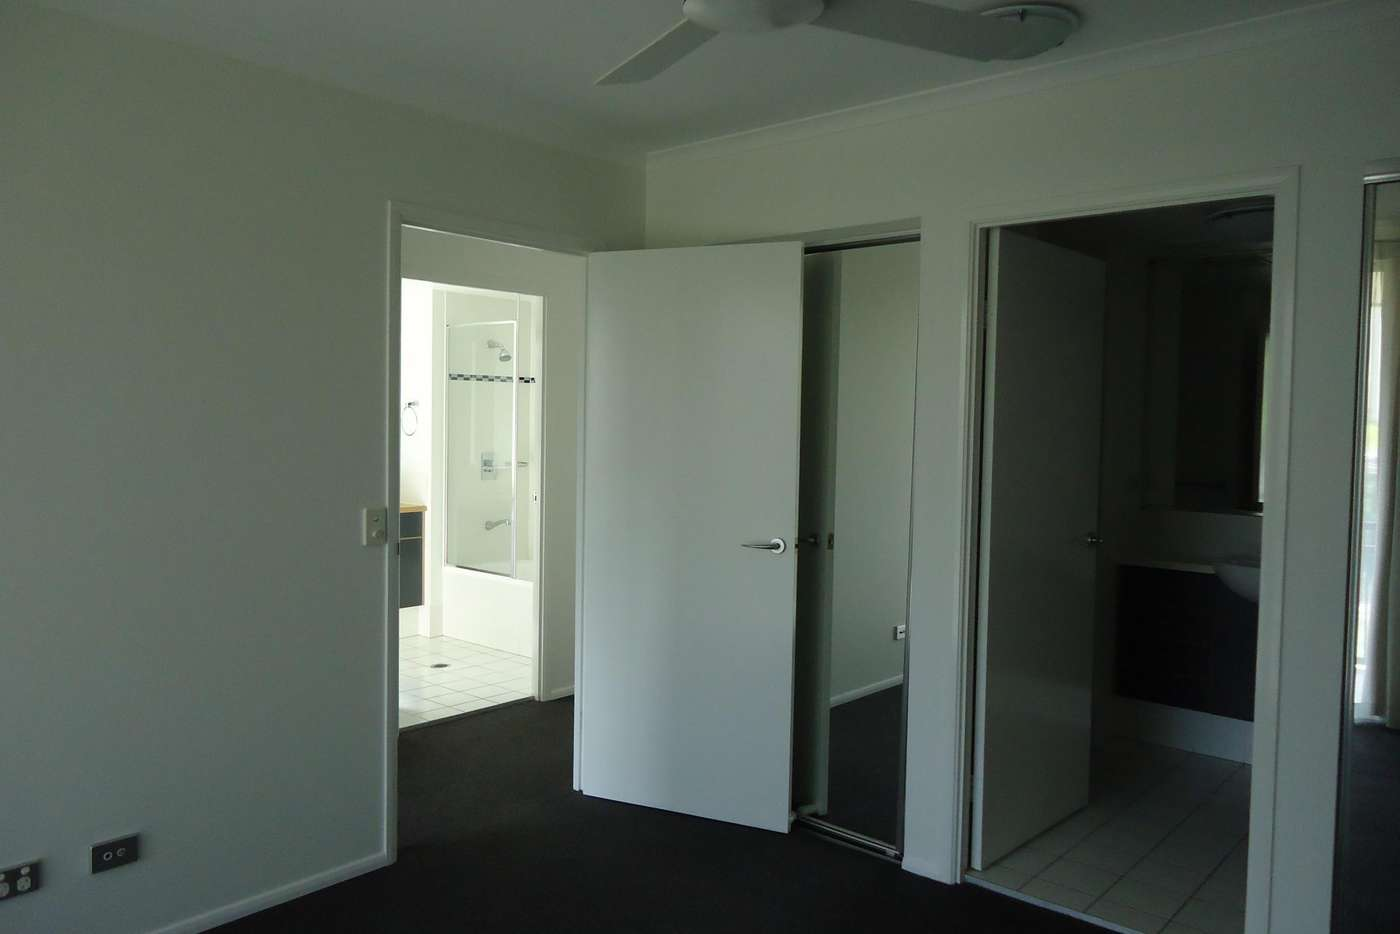 Fifth view of Homely apartment listing, 57/15 Goodwin Street, Kangaroo Point QLD 4169